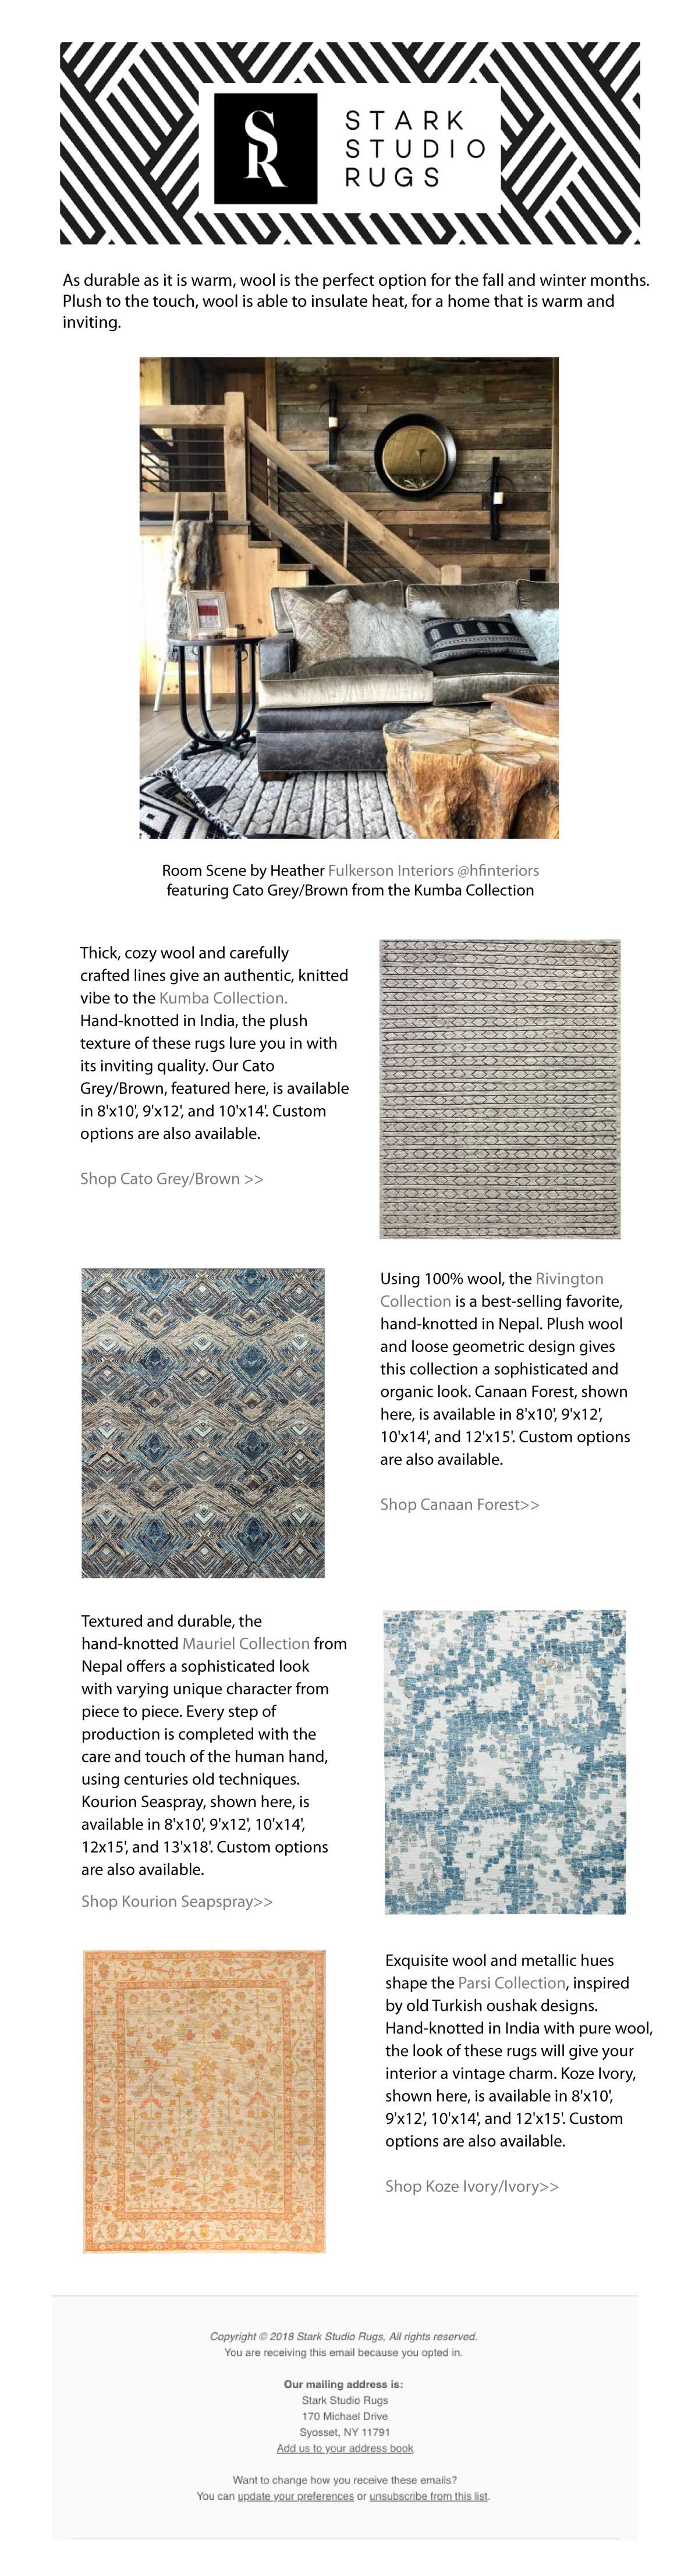 Stark Studio Rugs } 100% Wool: the Warmest Rugs of the Season